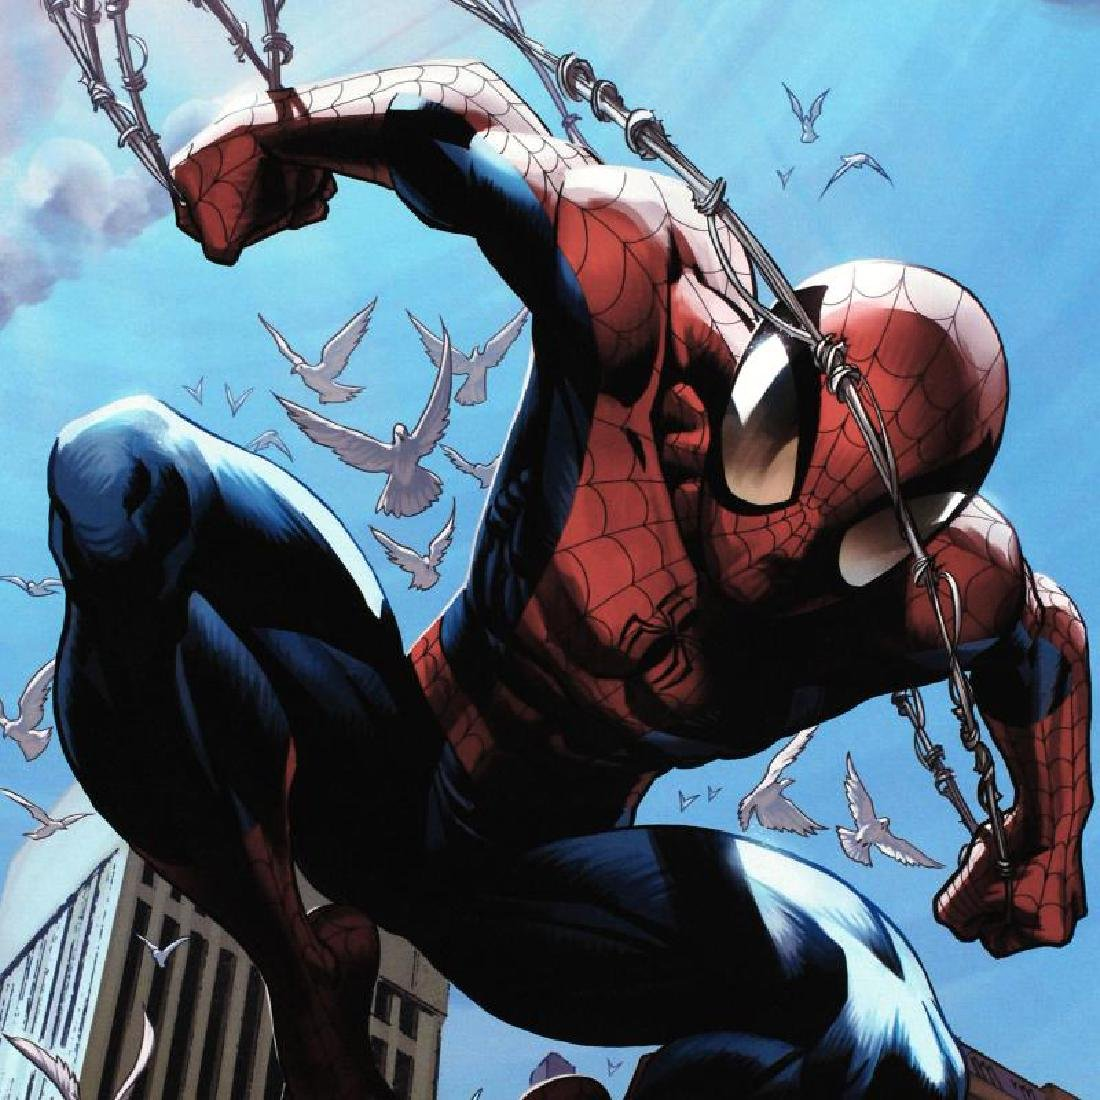 Ultimate Spider-Man #156 by Marvel Comics - 2